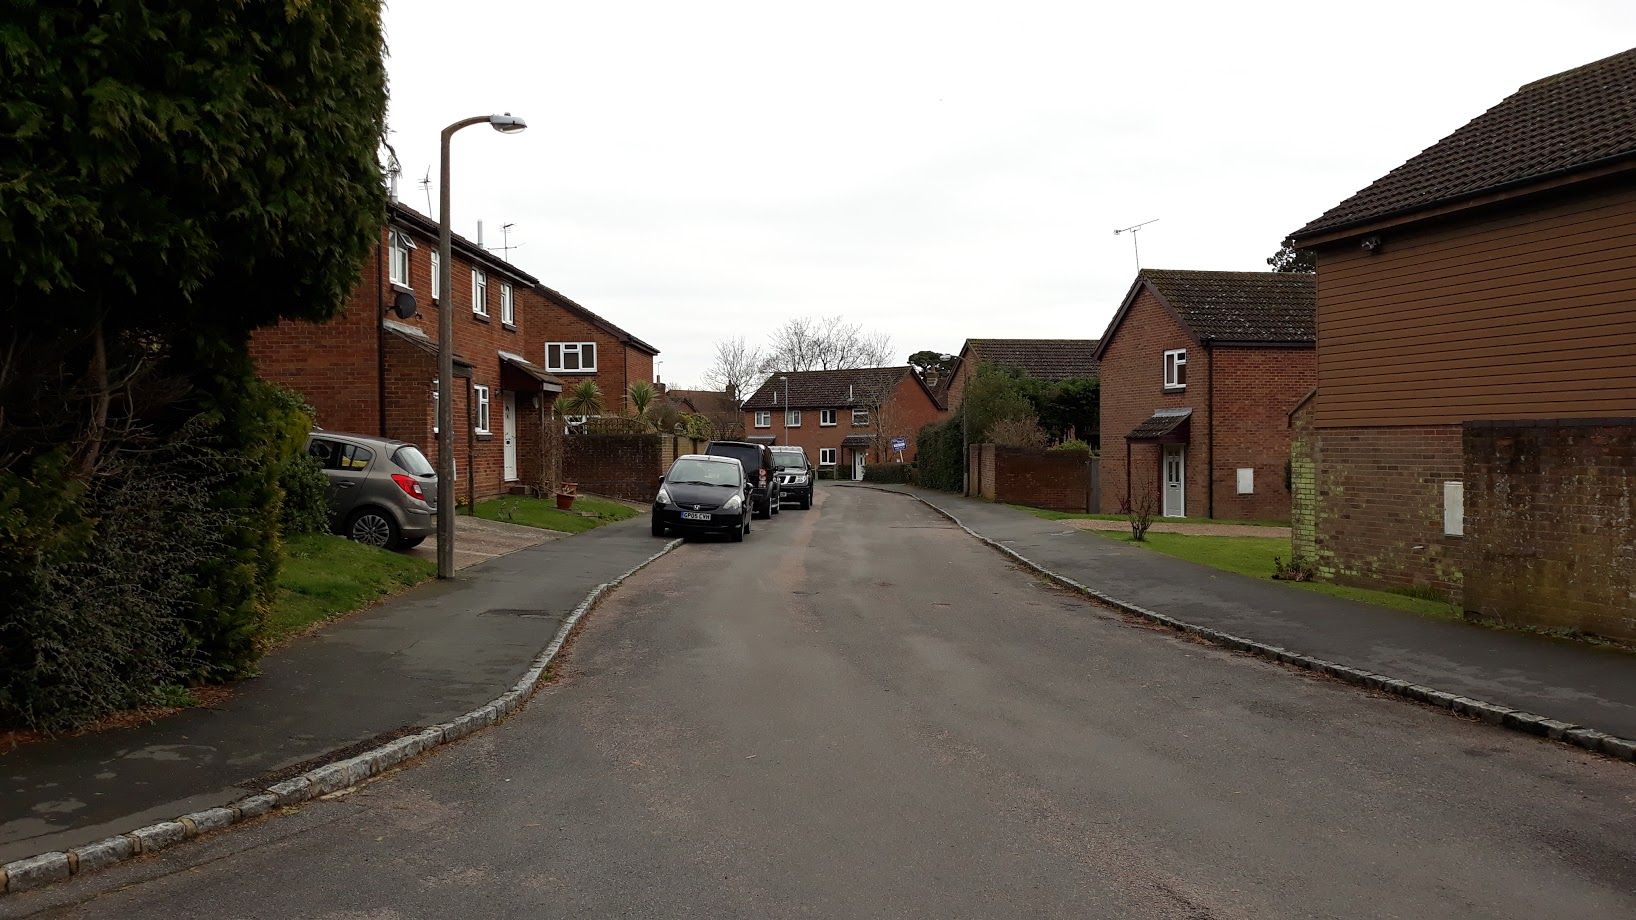 image of a street in hurst green